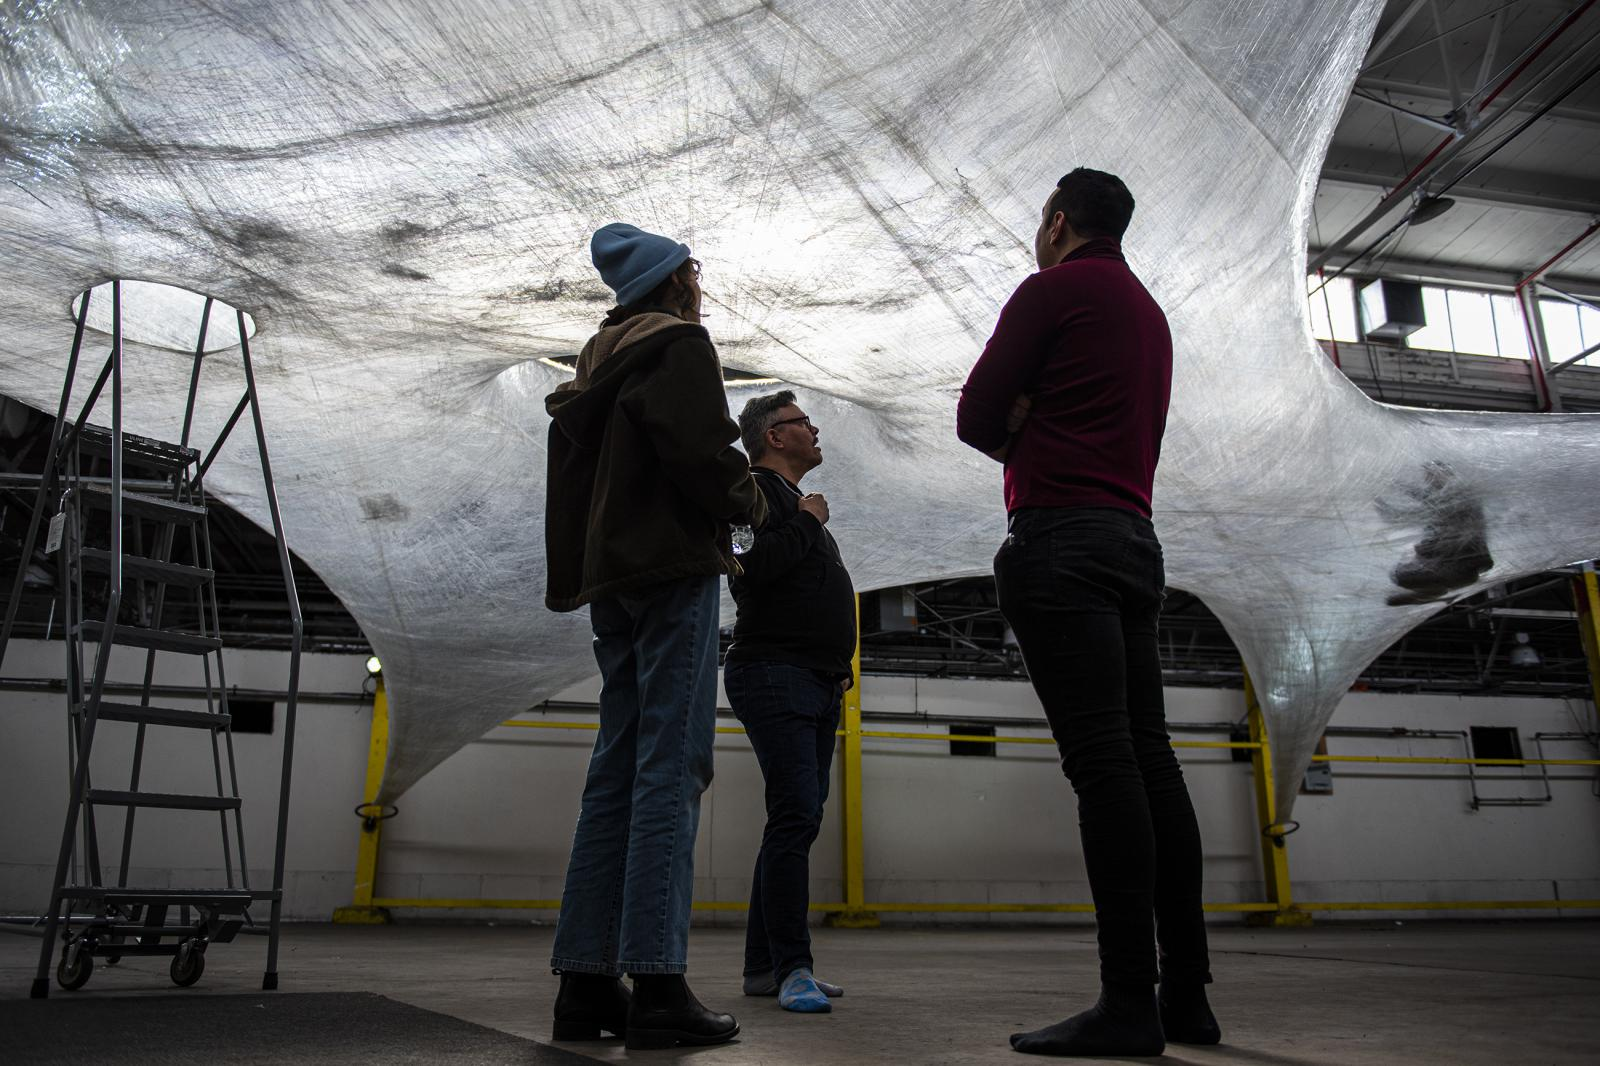 George Alley, right, Matthew Ray, middle, talk with Gina Grasso, a staff from Group X that made the art piece, in the Building 694 at the Navy Yard, in Philadelphia, Pa, on Sat, Nov. 9, 2019.